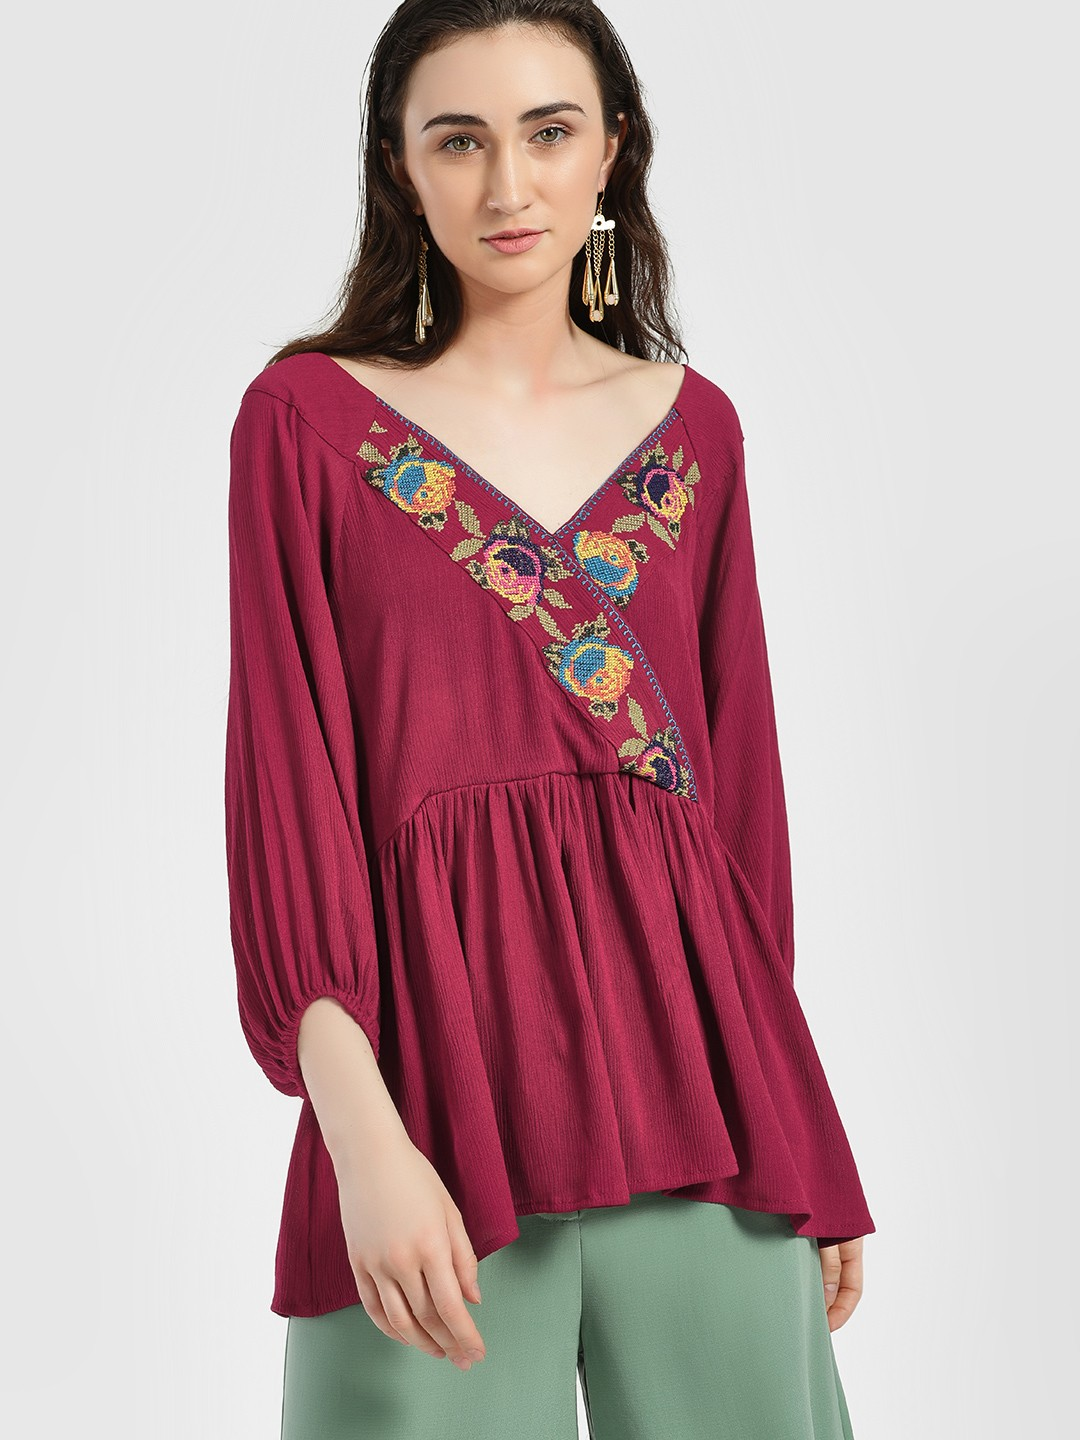 Rena Love Maroon Cross Stitch Embroidered Flared Blouse 1